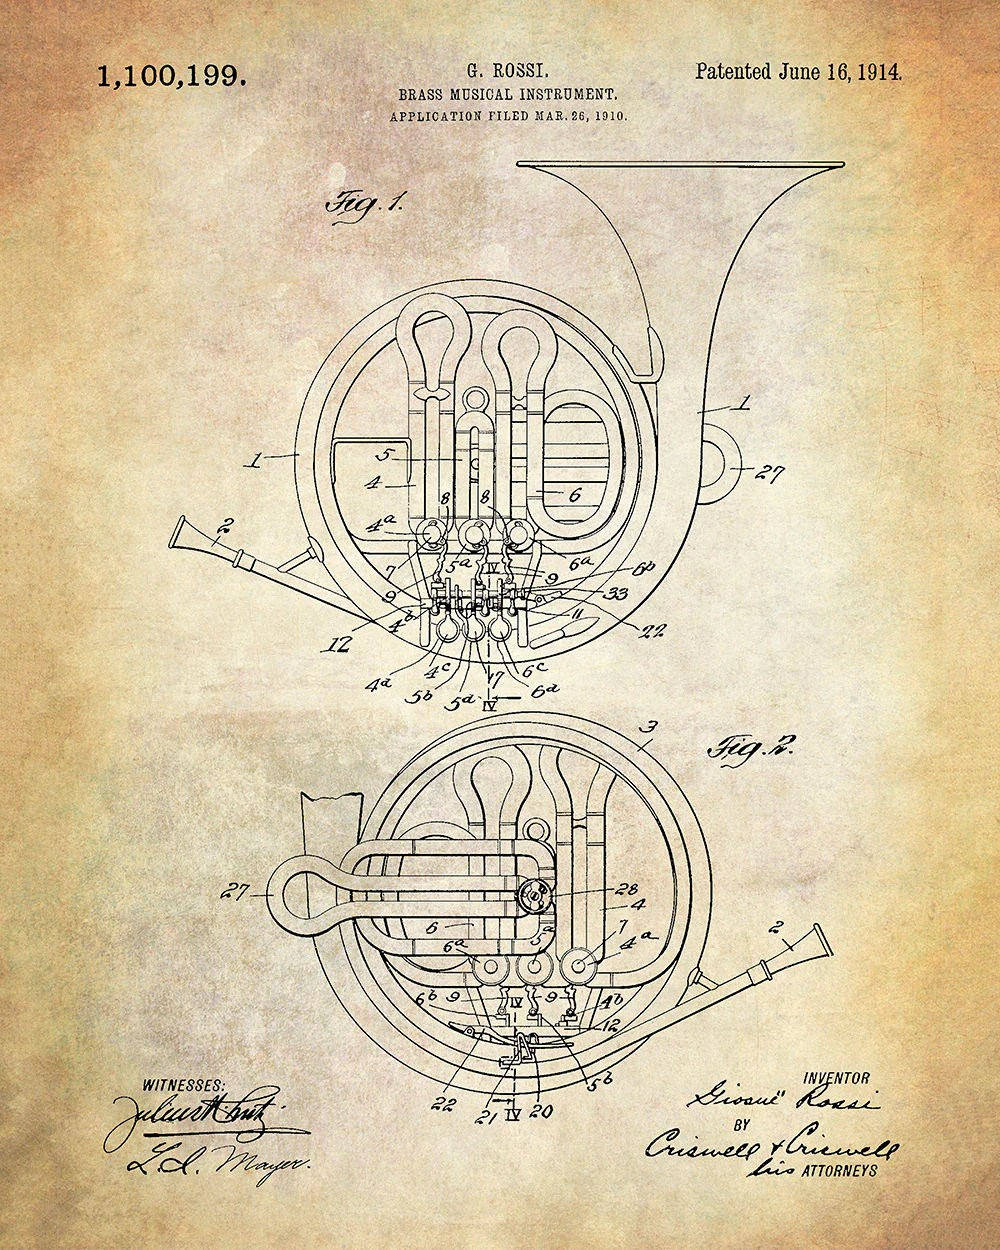 hight resolution of brass musical instrument patent art print french horn patent art print rossi brass musical instrument patent art print music patent